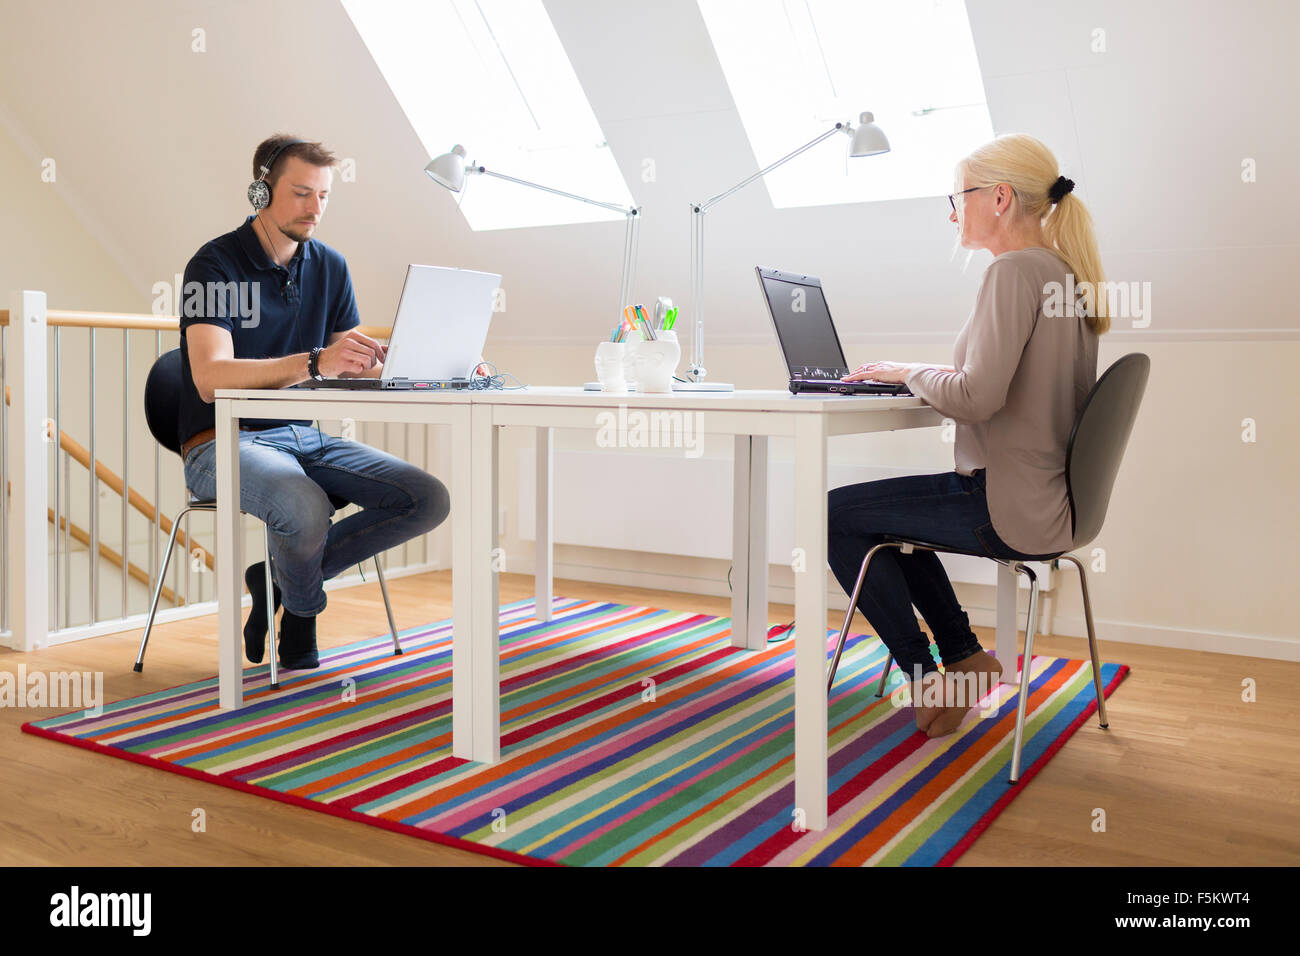 Sweden, Couple working at home - Stock Image